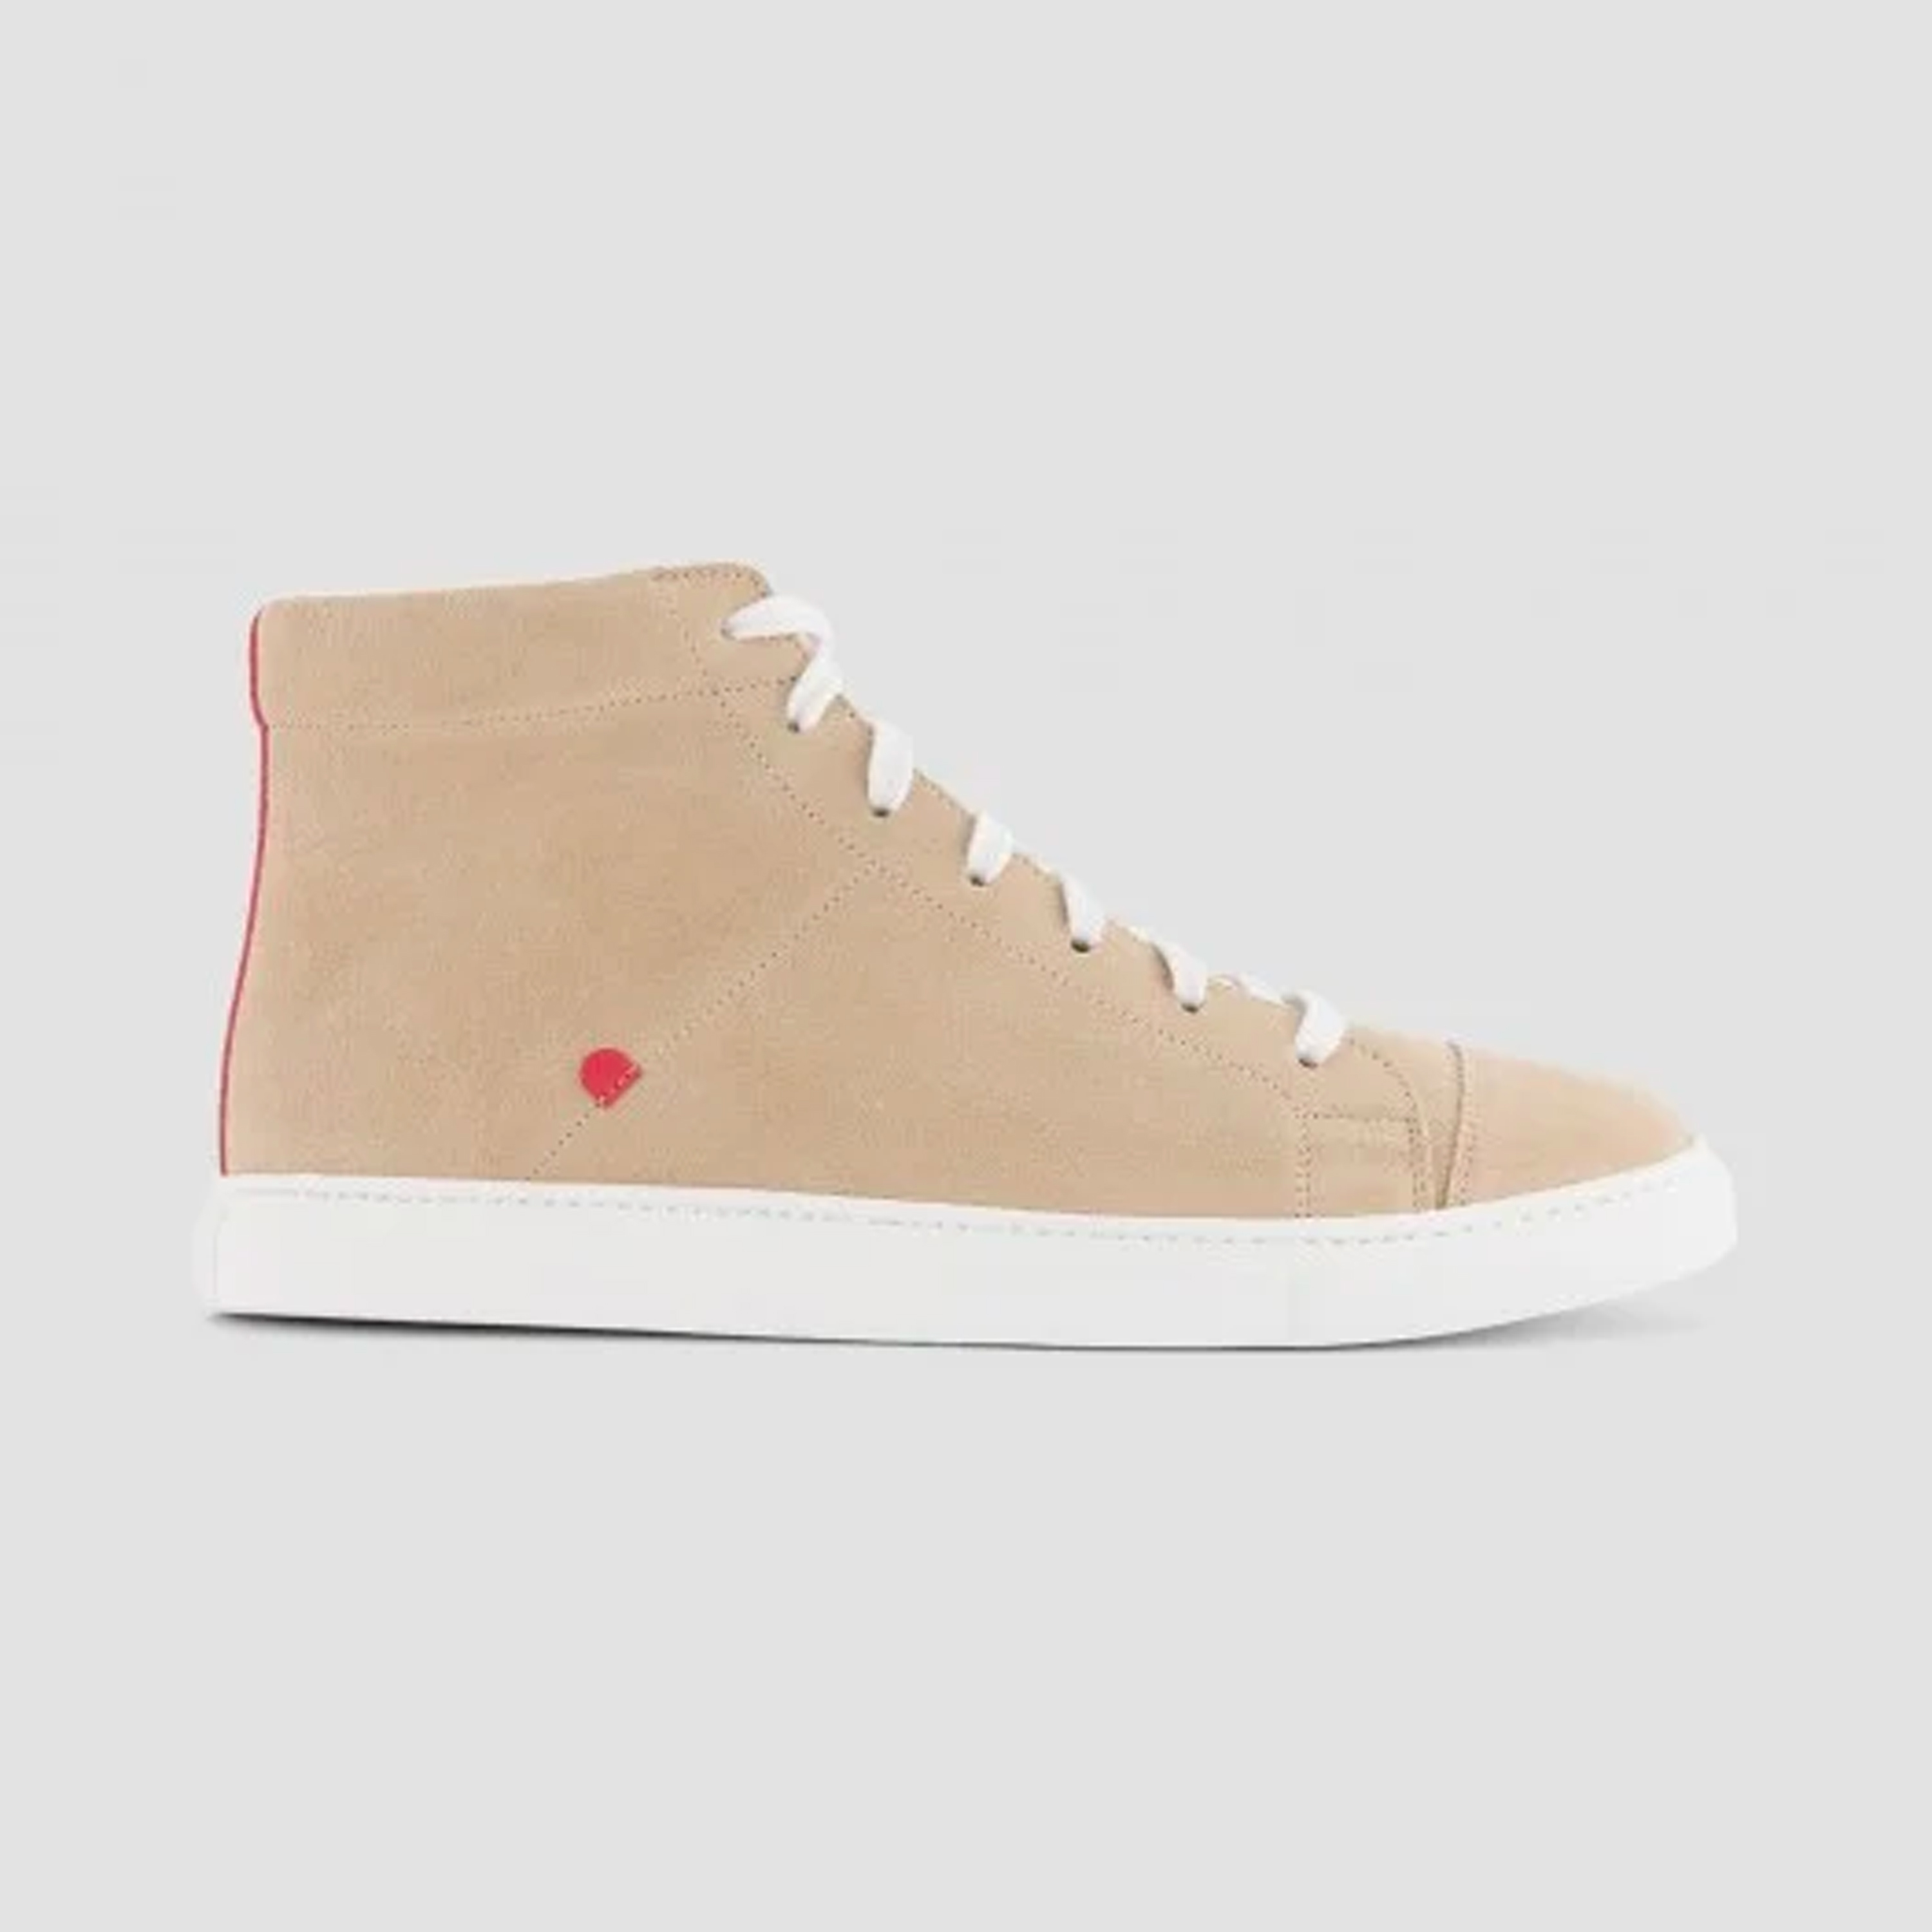 951 les sneakers montantes champagne